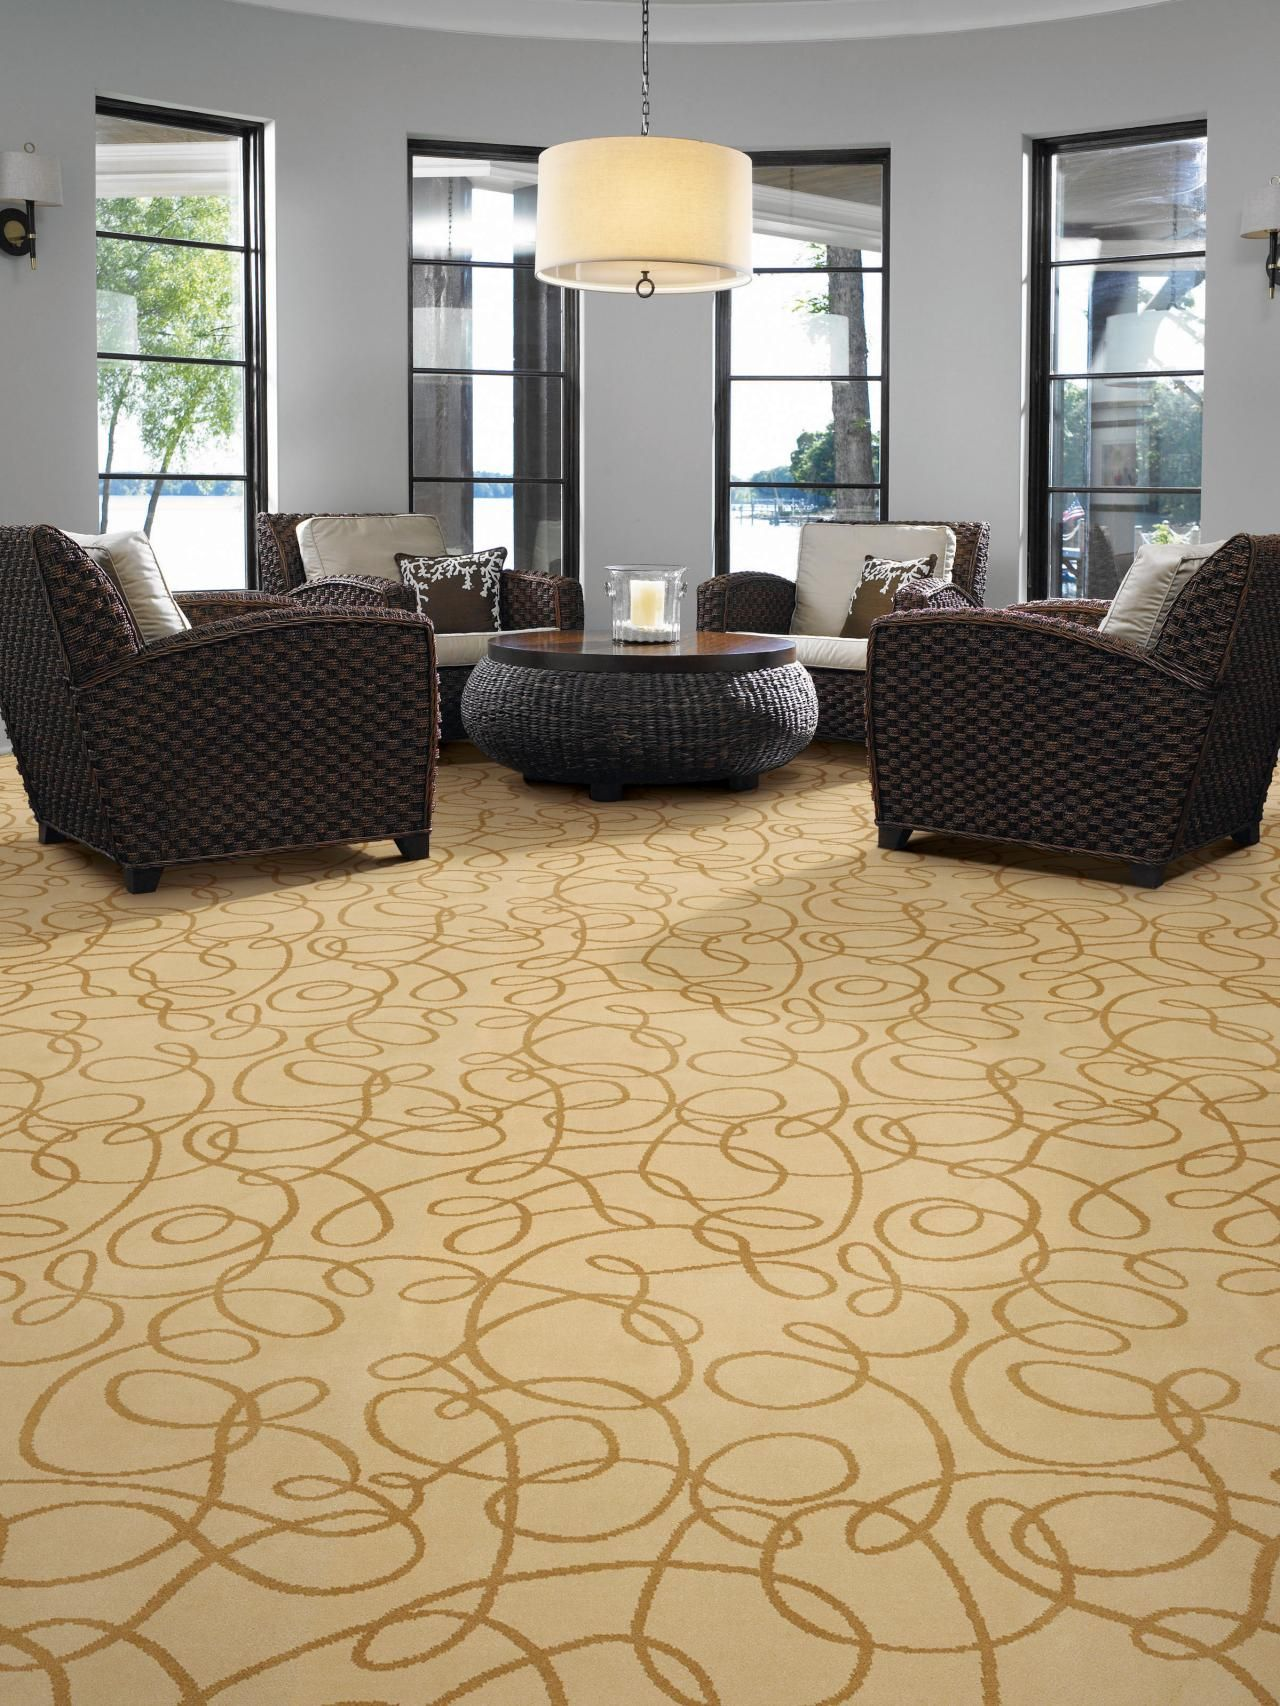 Carpet Floors | Patterned carpet, Sitting rooms and Natural light